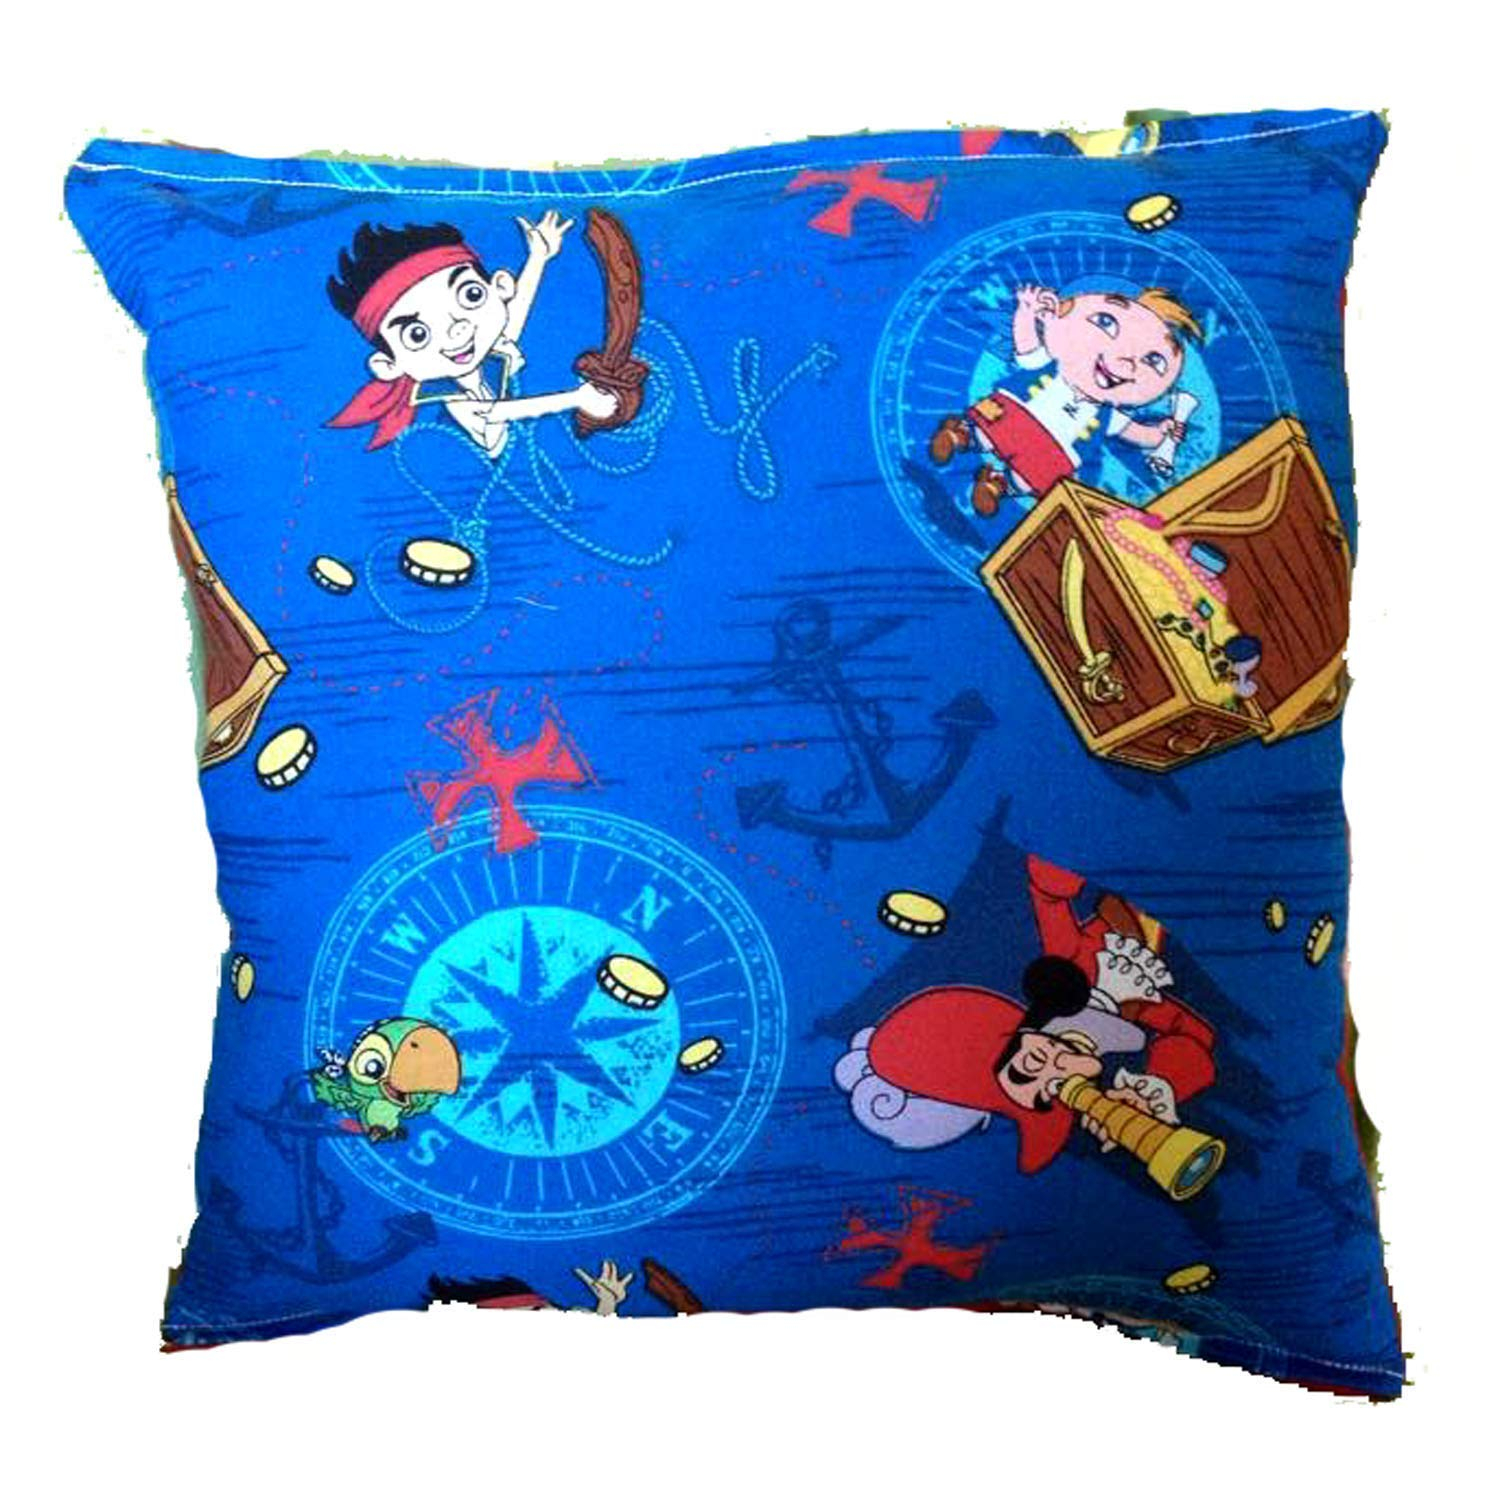 Jake Pillow Jake and the Neverland Pirates Pillow 10 inches by 11 inches Handmade Hypoallergenic Cotton with Flannel Backing Ideal for Gift and Multiple Uses